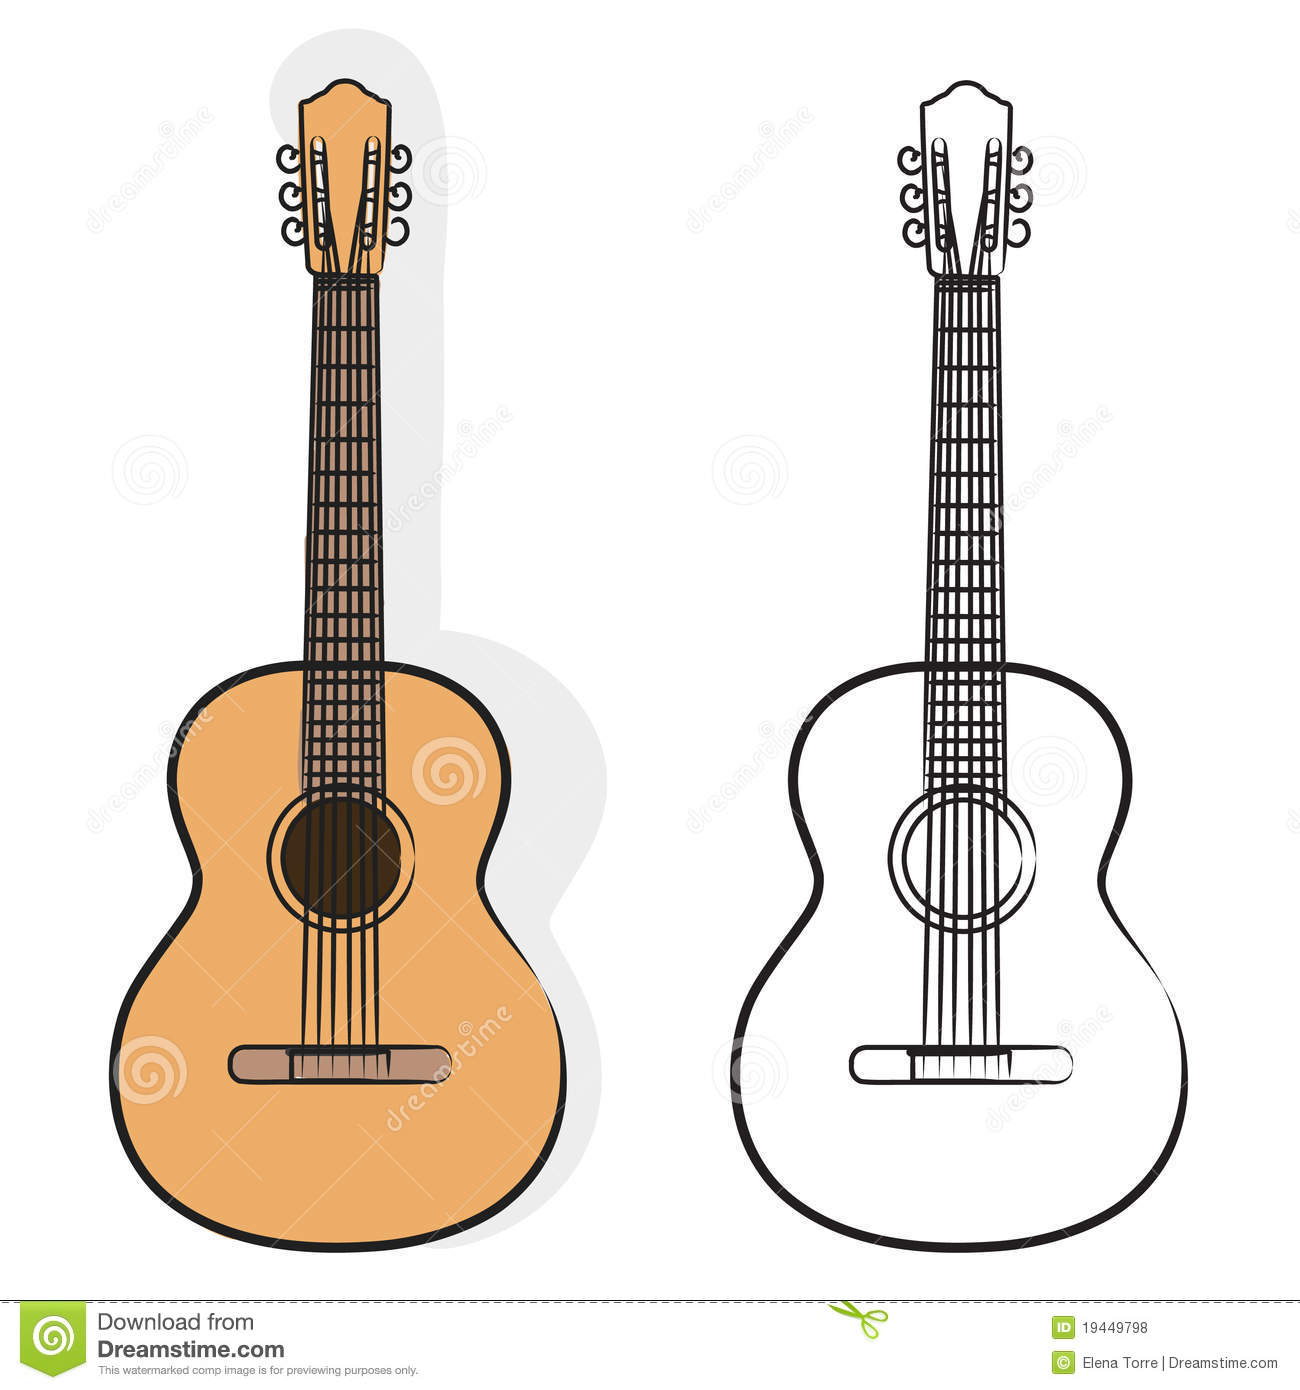 Illustrations of acoustic guitar isolated on white background + vector ...